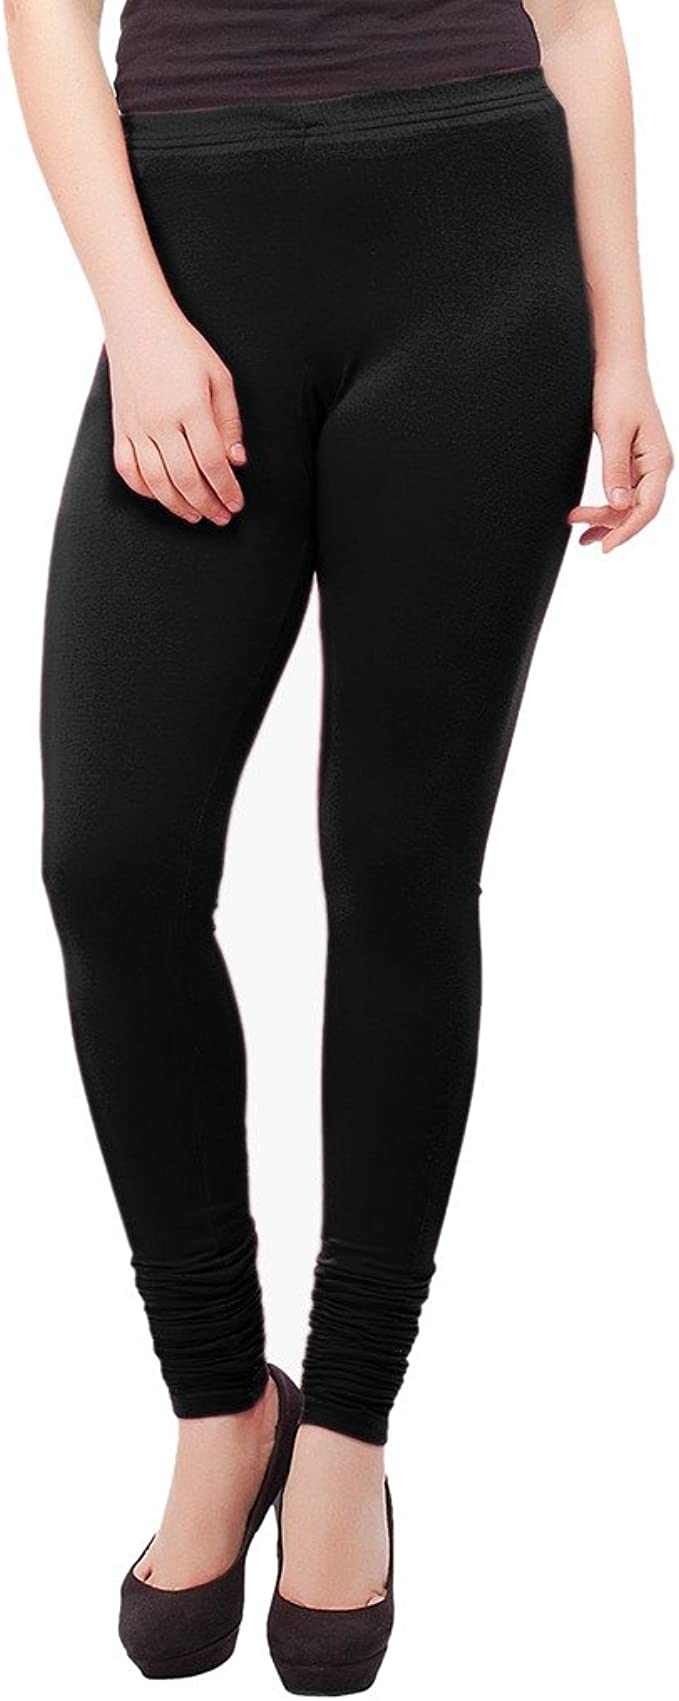 Pack of 6 IndiWeaves Girls Premium Cotton Ankle Length Solid Leggings